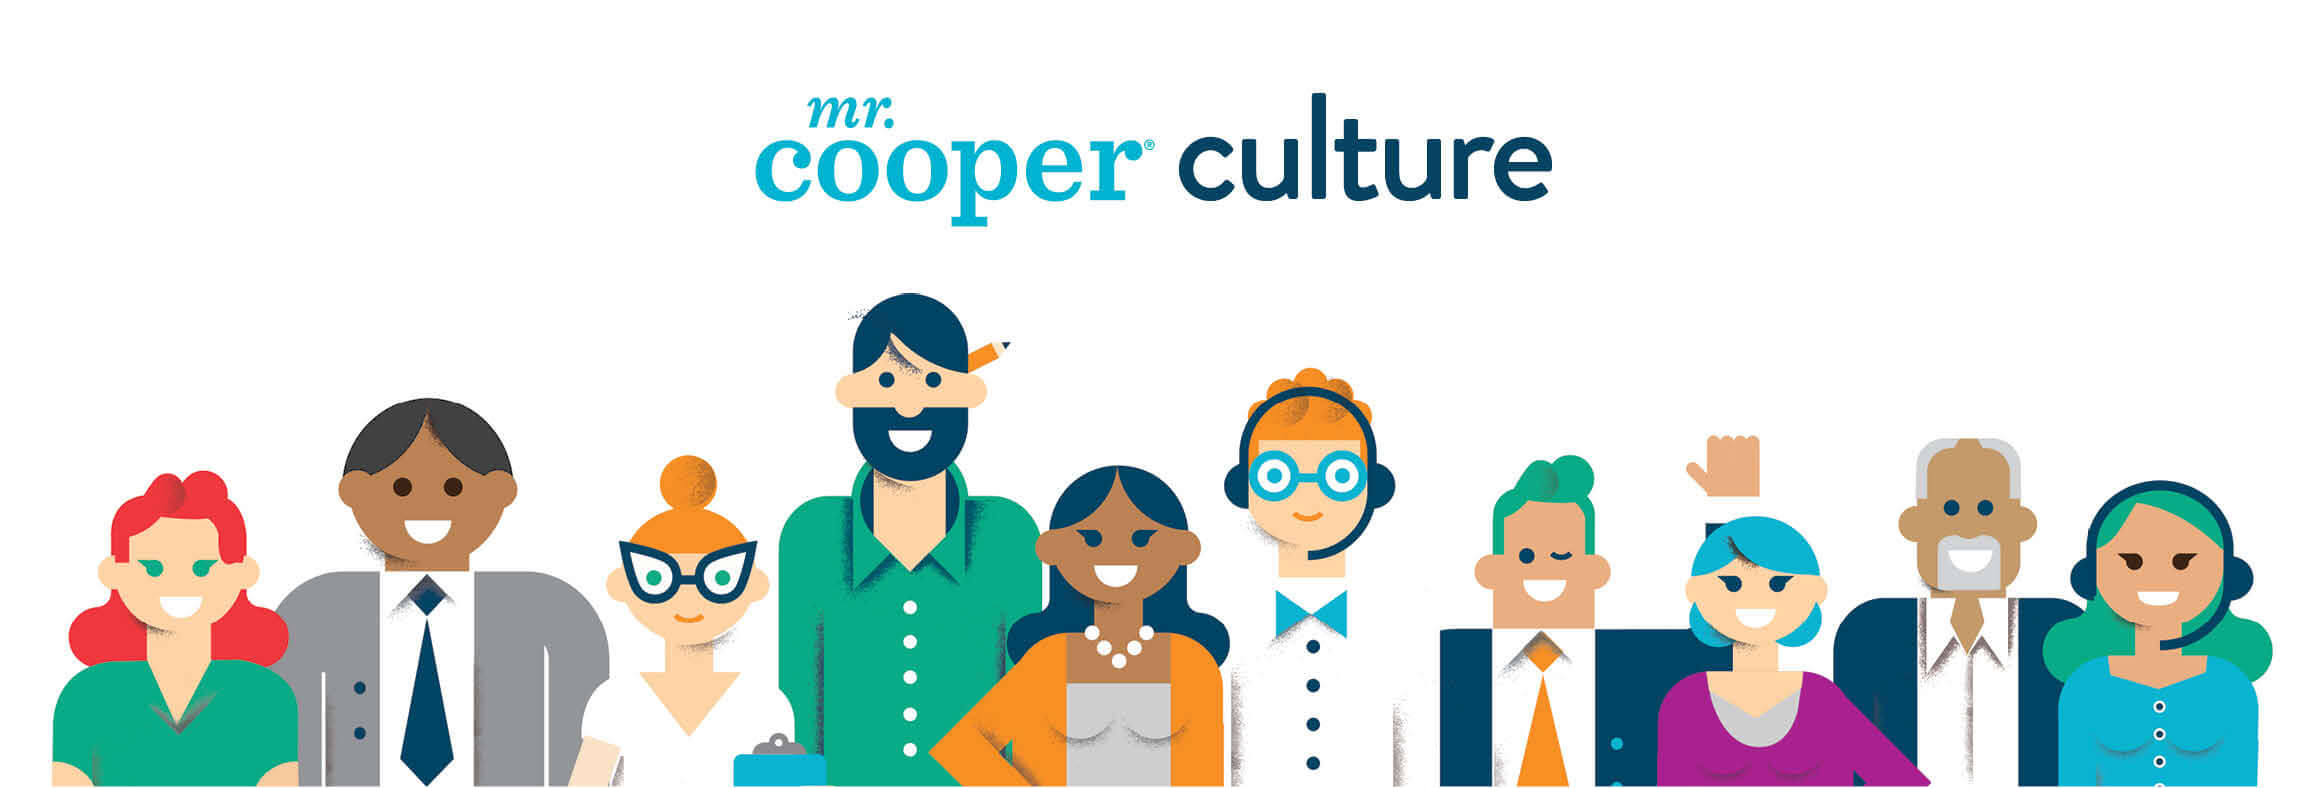 Mr. Cooper celebrates diversity and inclusion.